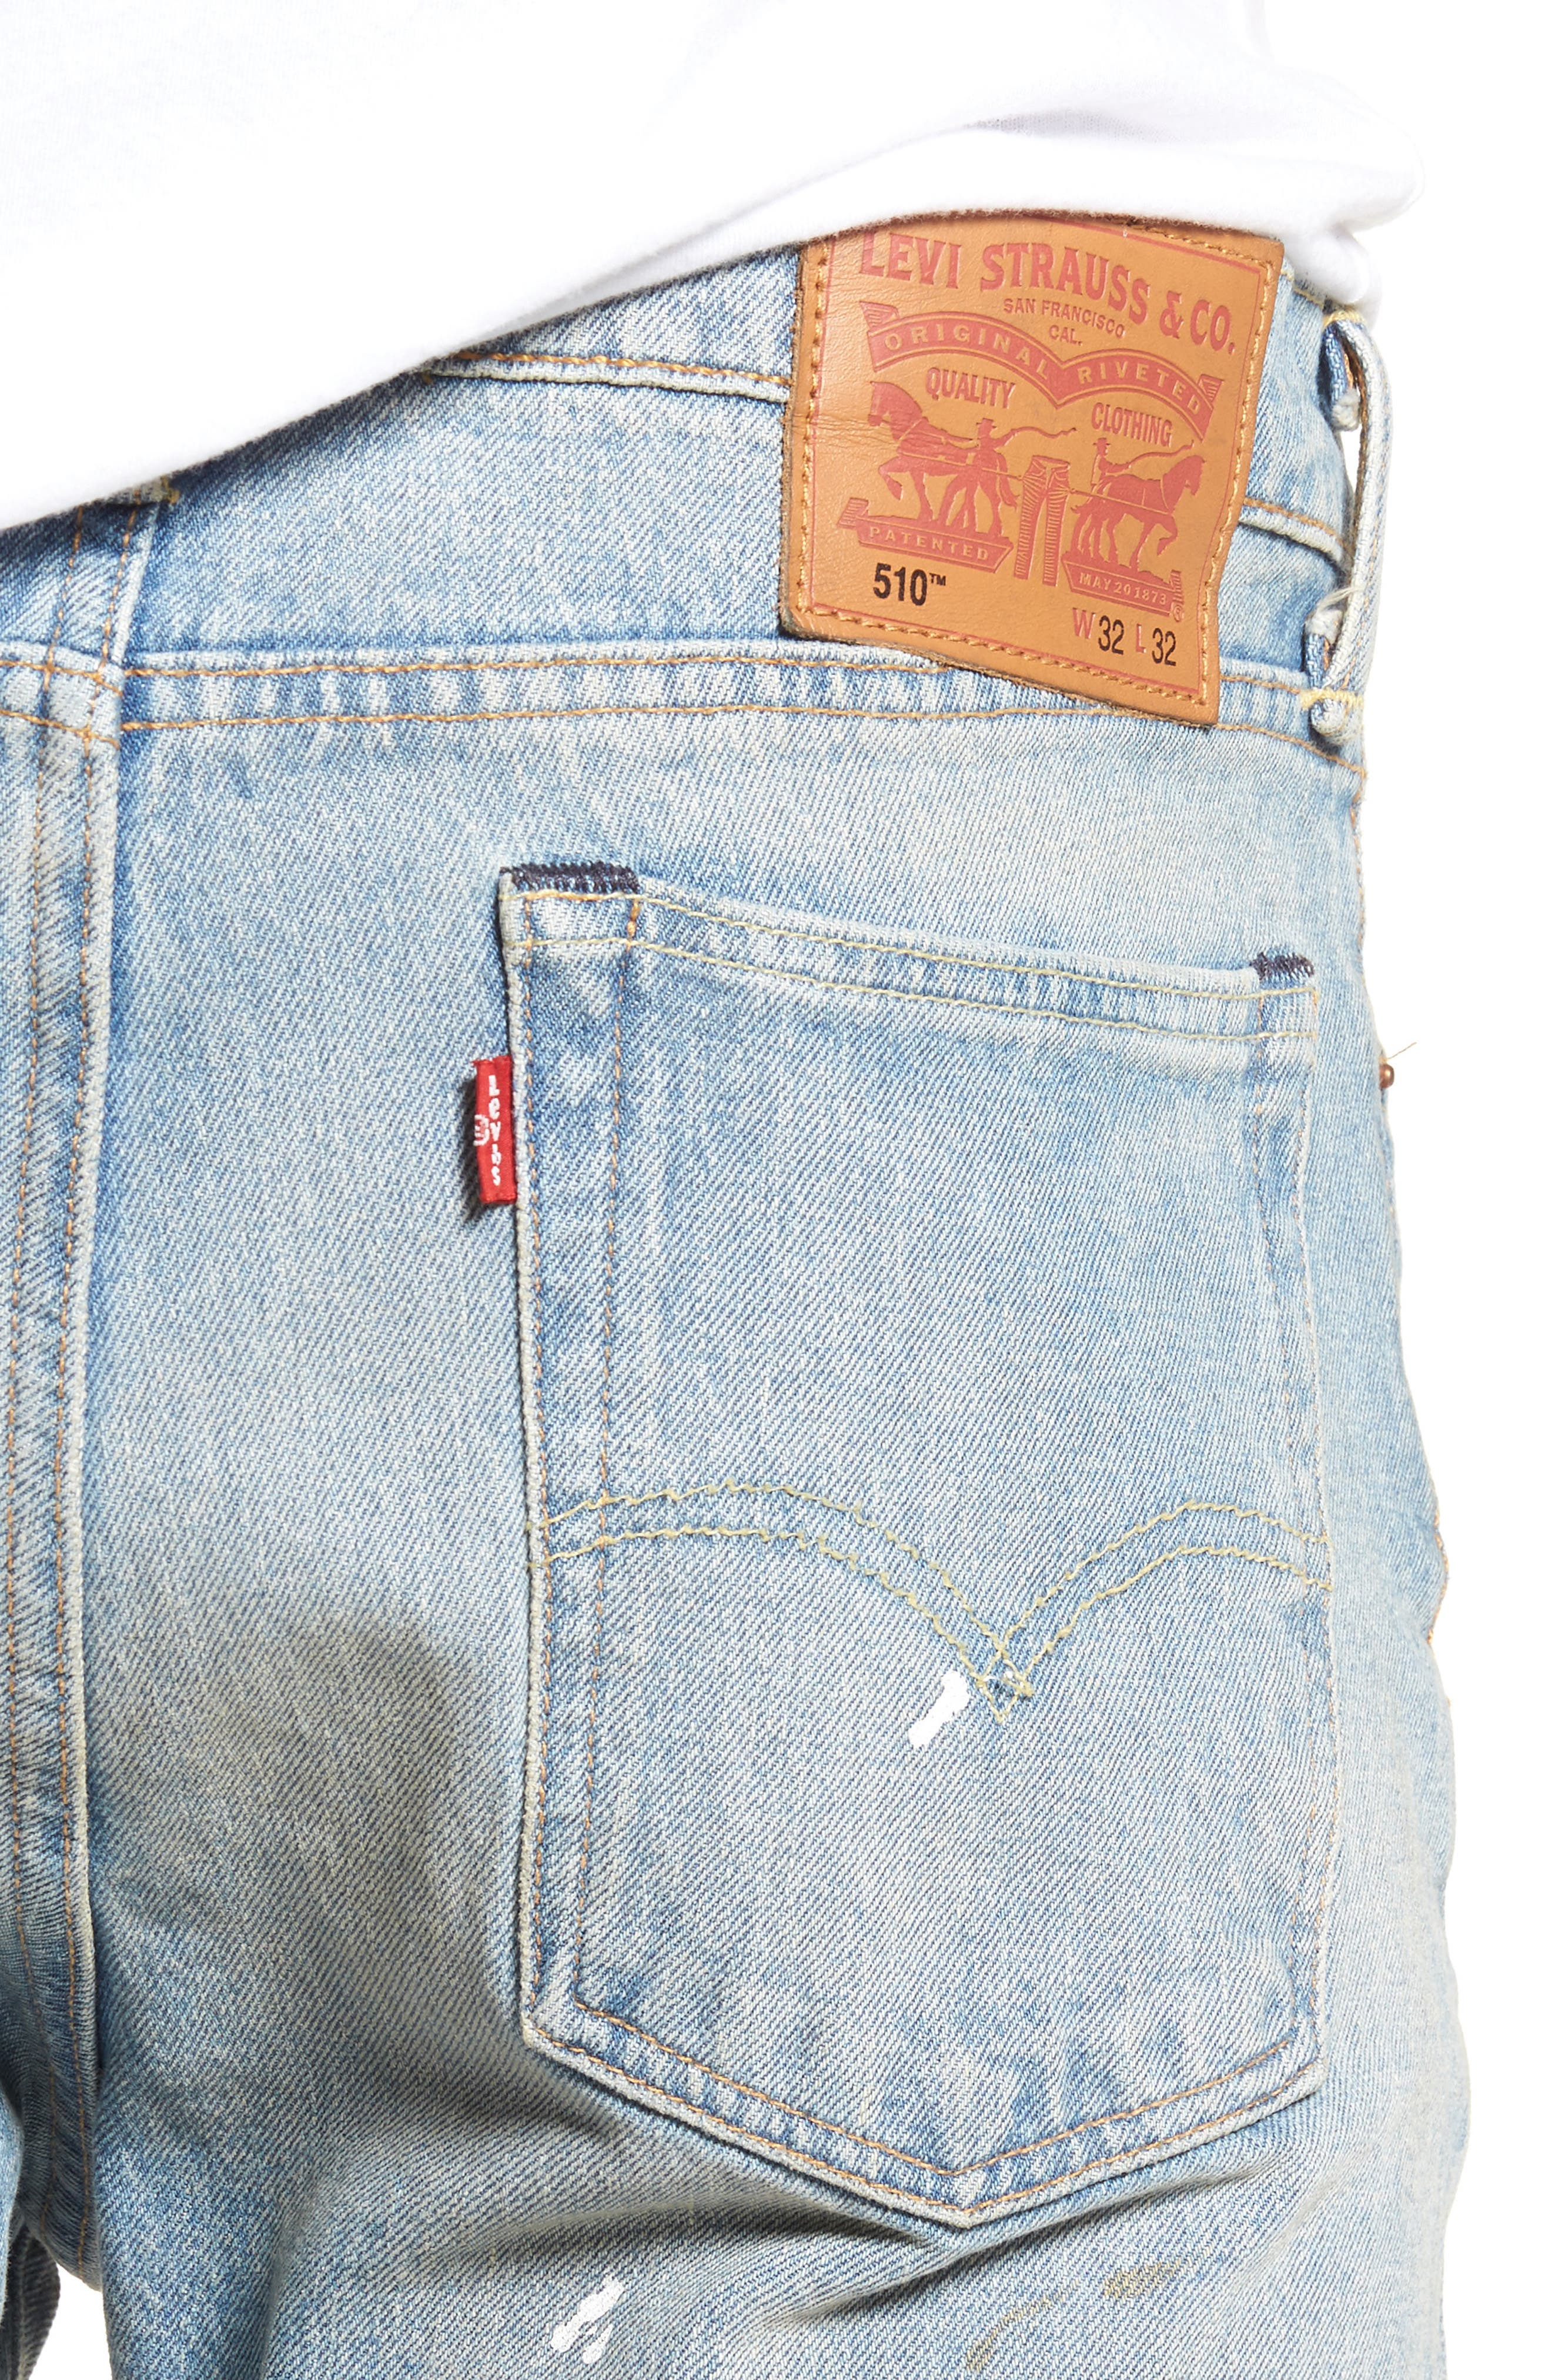 510<sup>™</sup> Skinny Fit Jeans,                             Alternate thumbnail 4, color,                             Mitchell